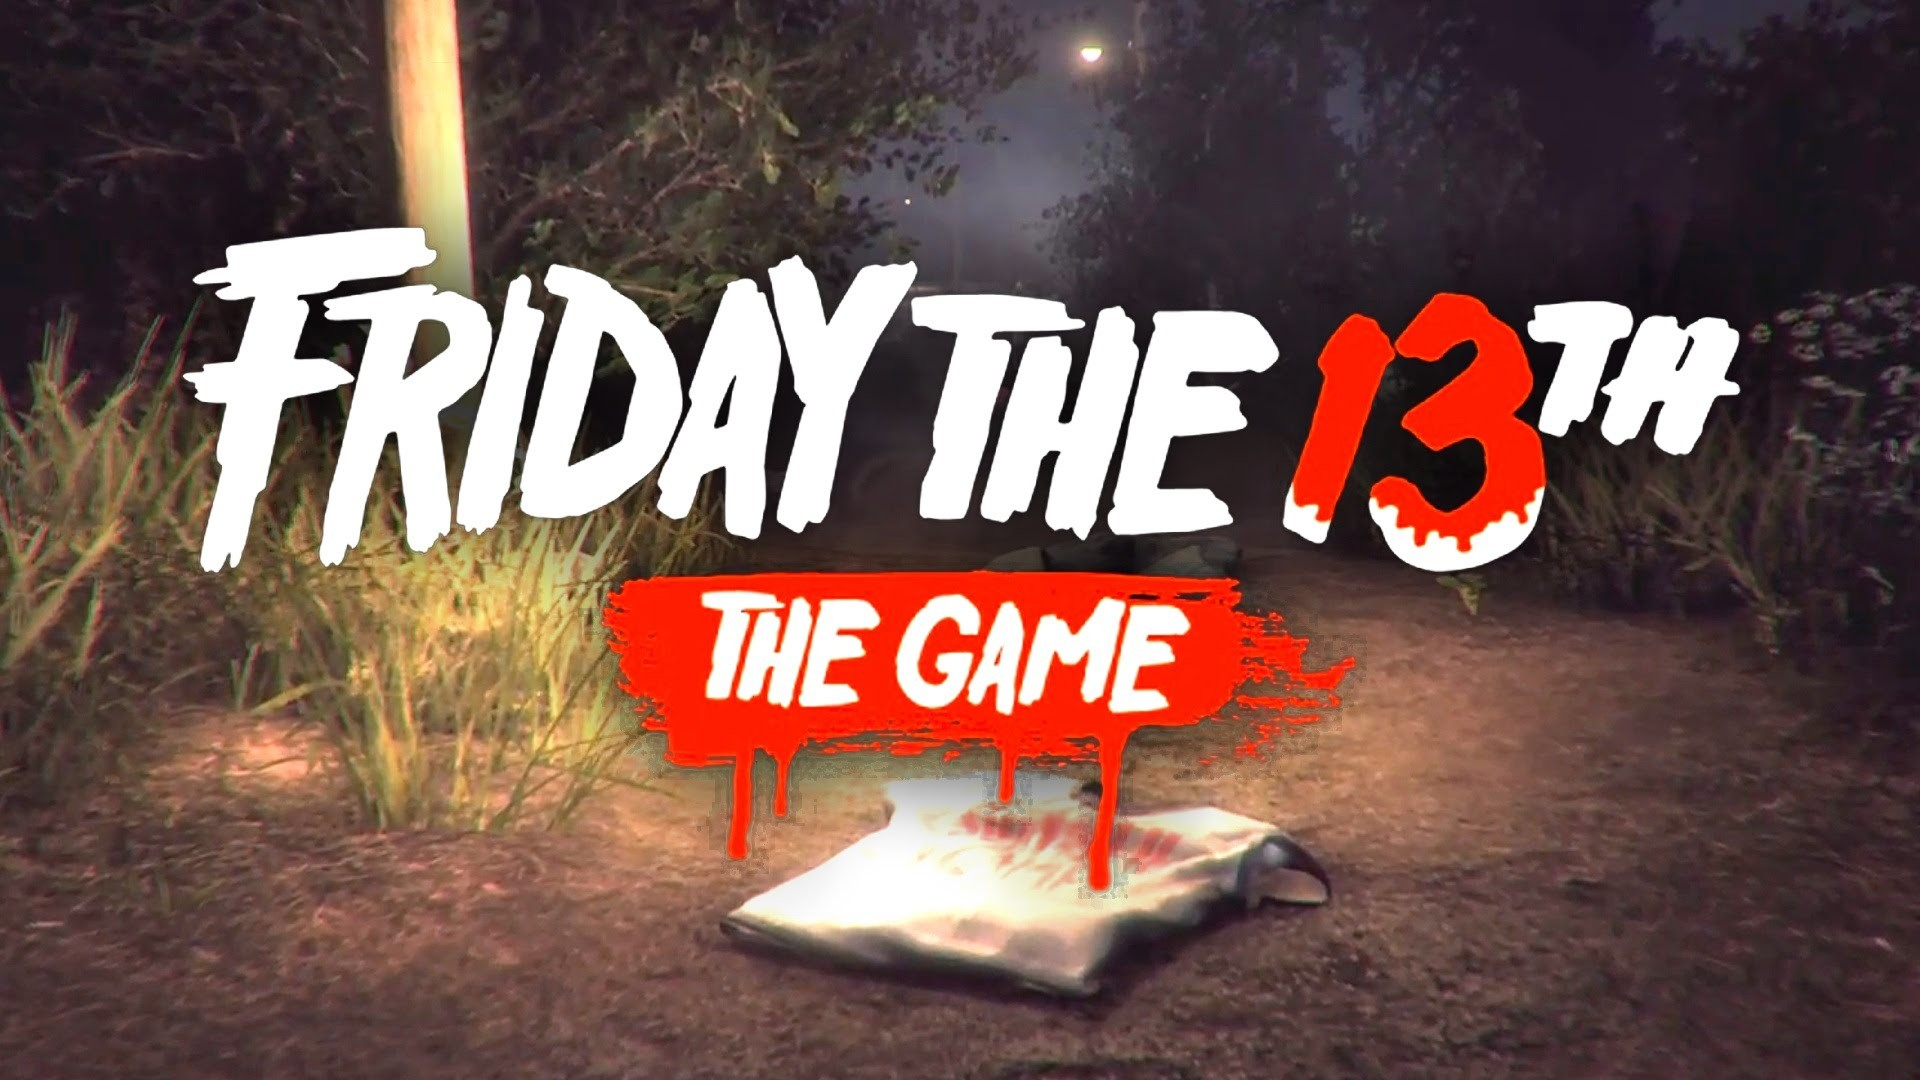 Res: 1920x1080, Friday the 13th: The Game! Jason Voorhees vs Counselors (Official  Reveal/Trailer/Kickstarter) - YouTube